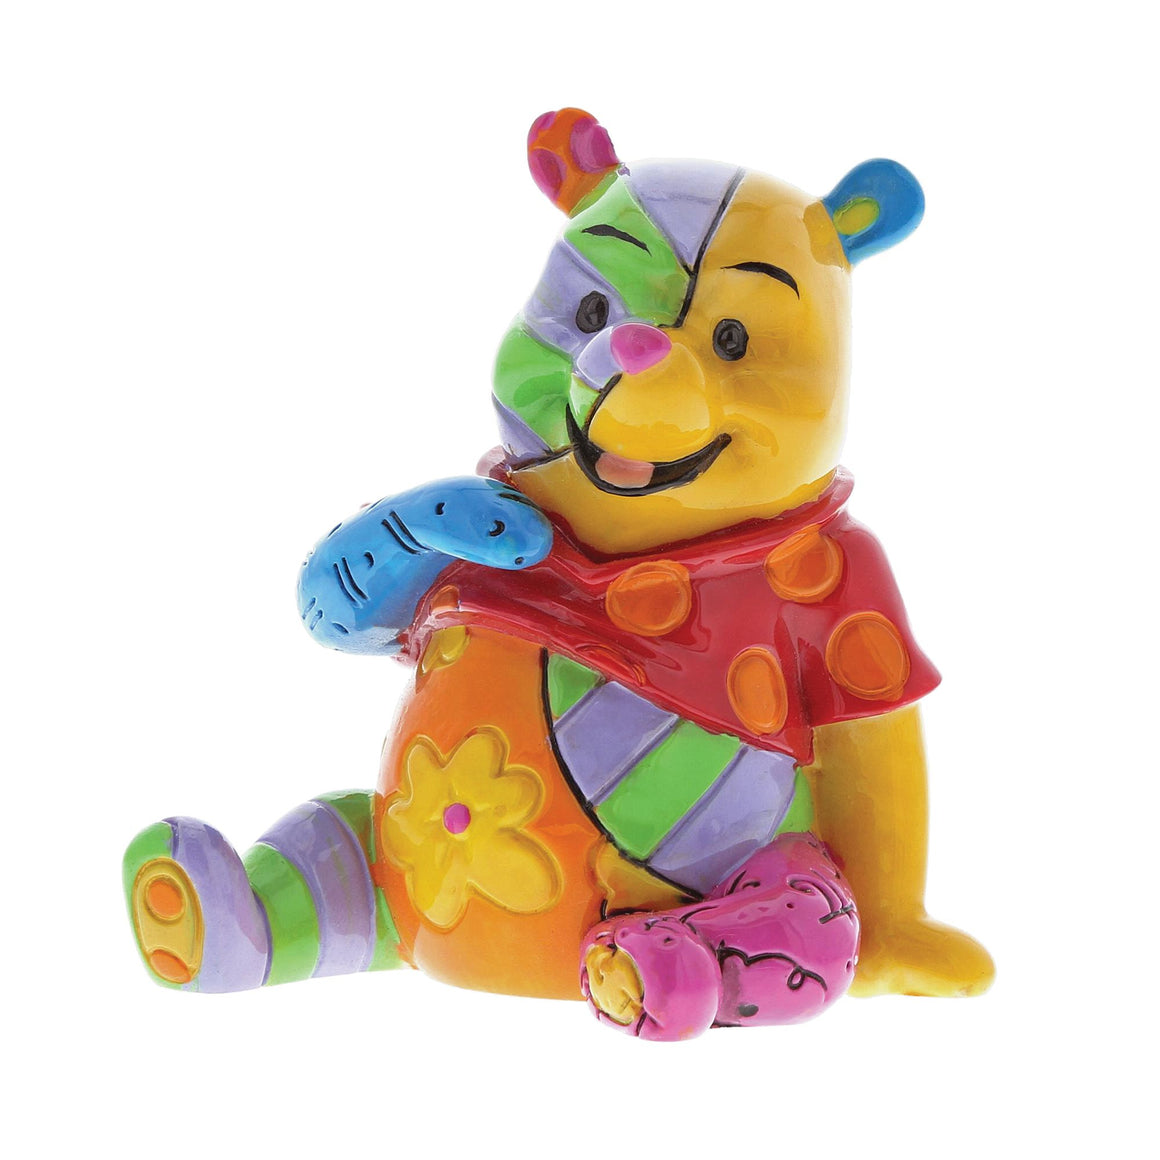 Winnie the Pooh Mini Figurine by Disney Britto